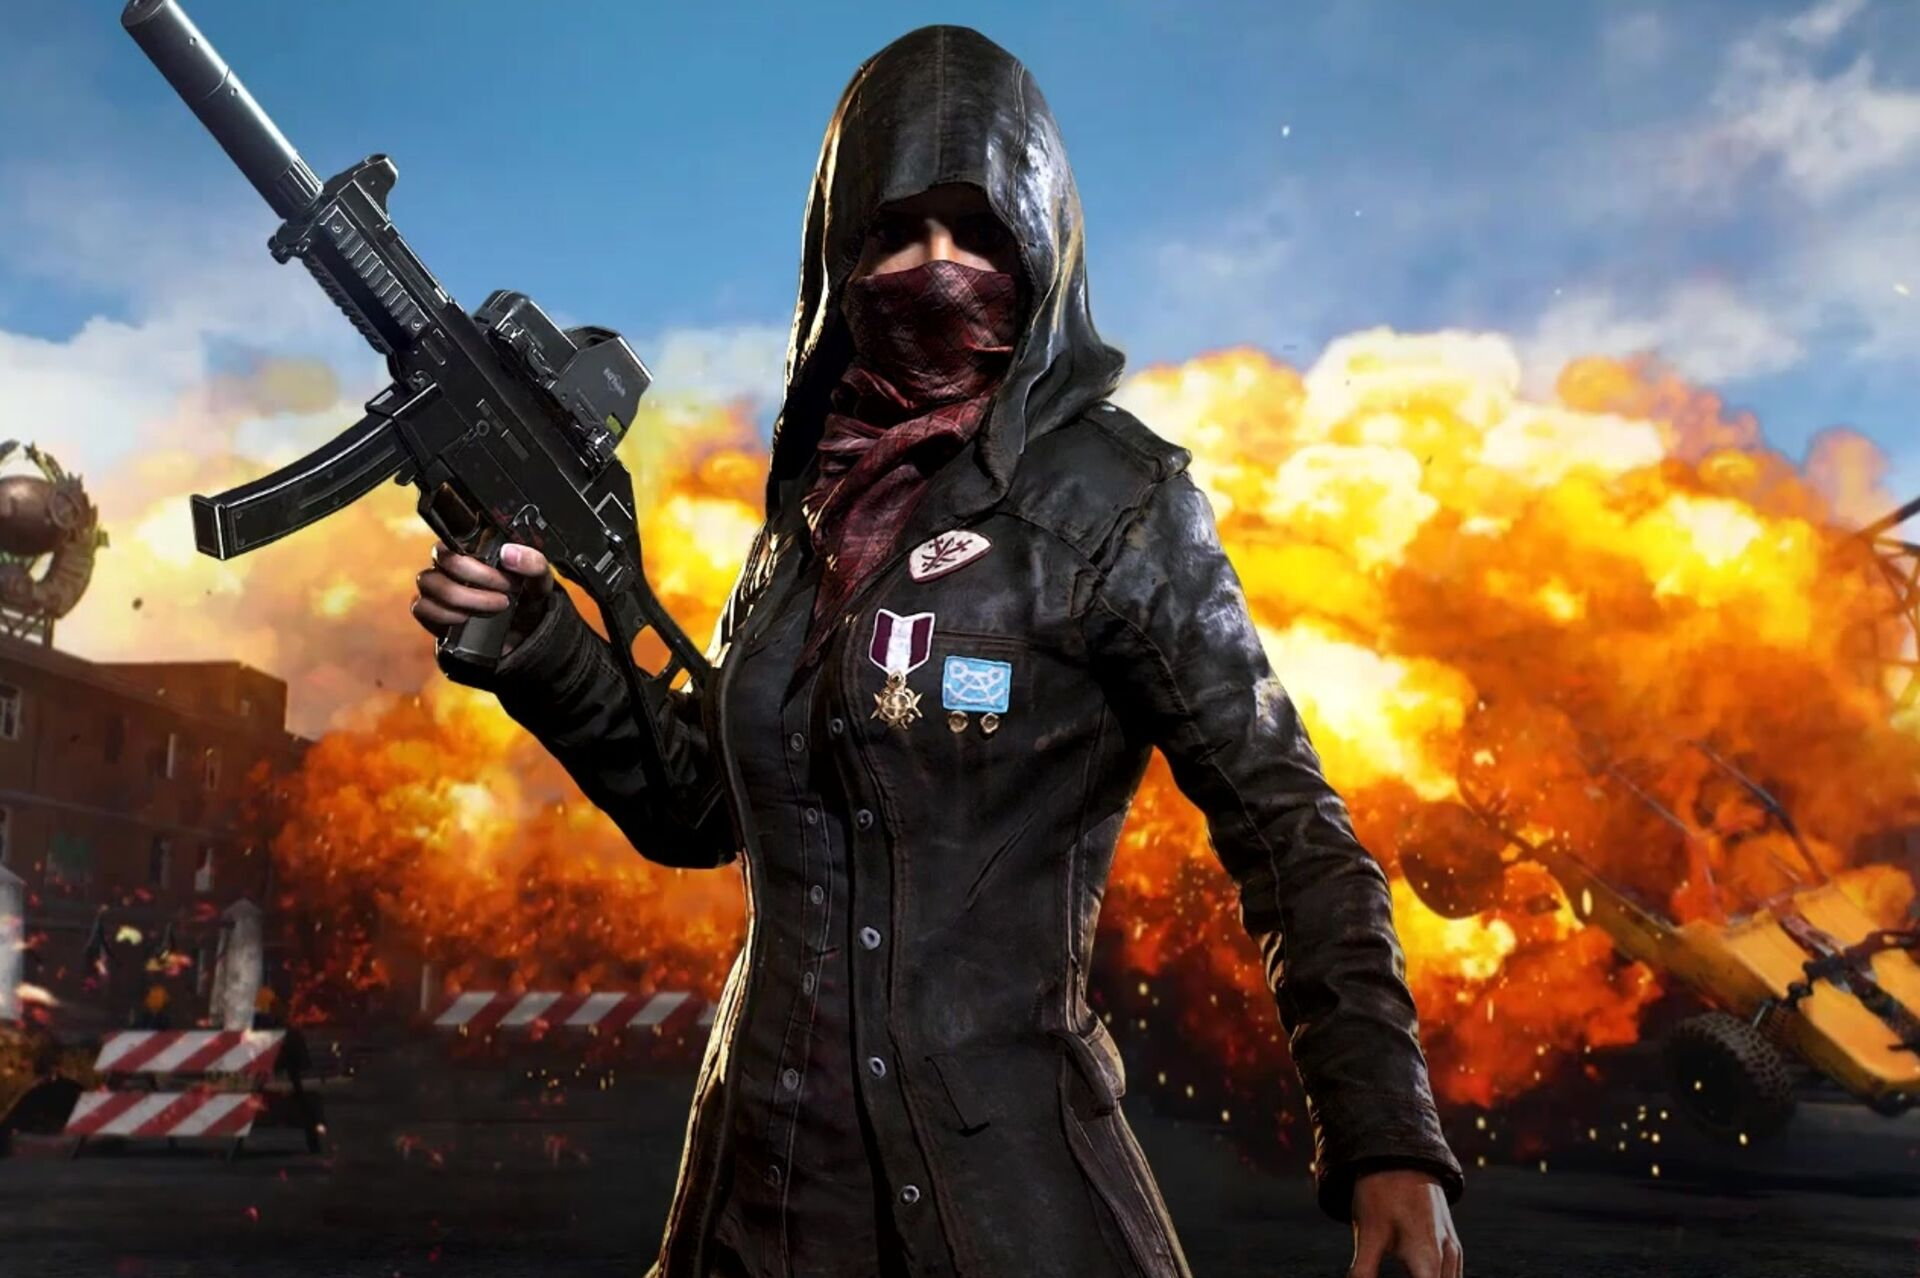 PUBG Xbox One patch analysis: two steps forward, one step back